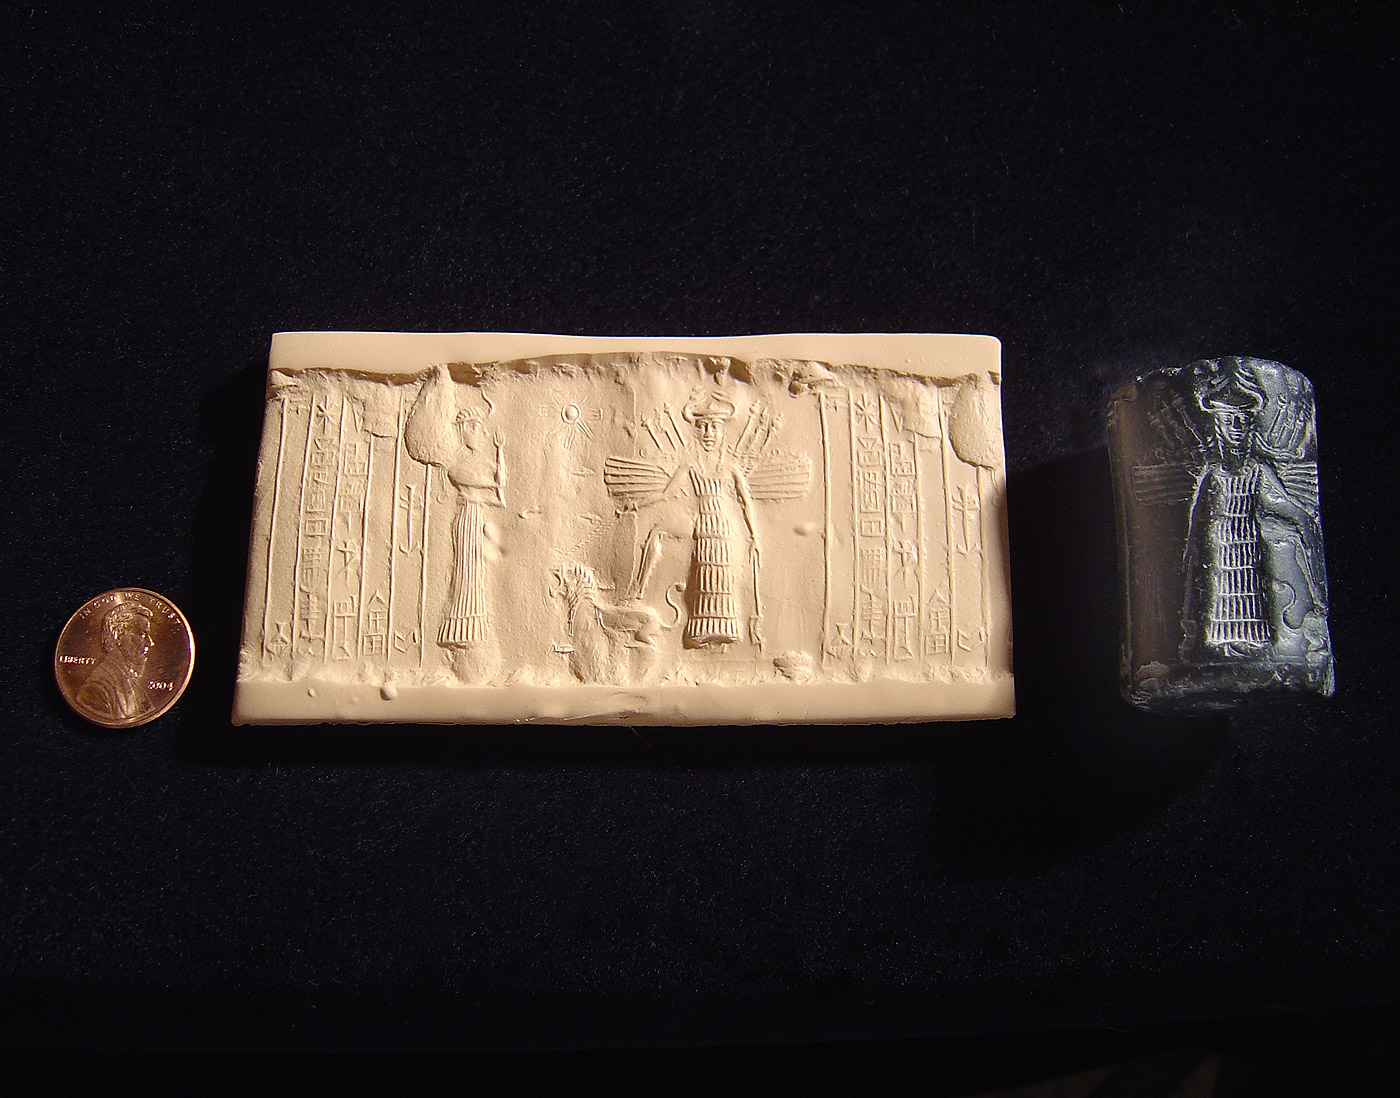 3r - Ninshubur & Inanna imprinted on wet clay with reversed-carved rolled rock forming a seal, winged Inanna holds high-tech alien weapon, misunderstood by earthlings, she placed one foot upon her zodiac symbol - Leo the Lion, her 8-pointed star symbol of Venus is faintly just off her right shoulder